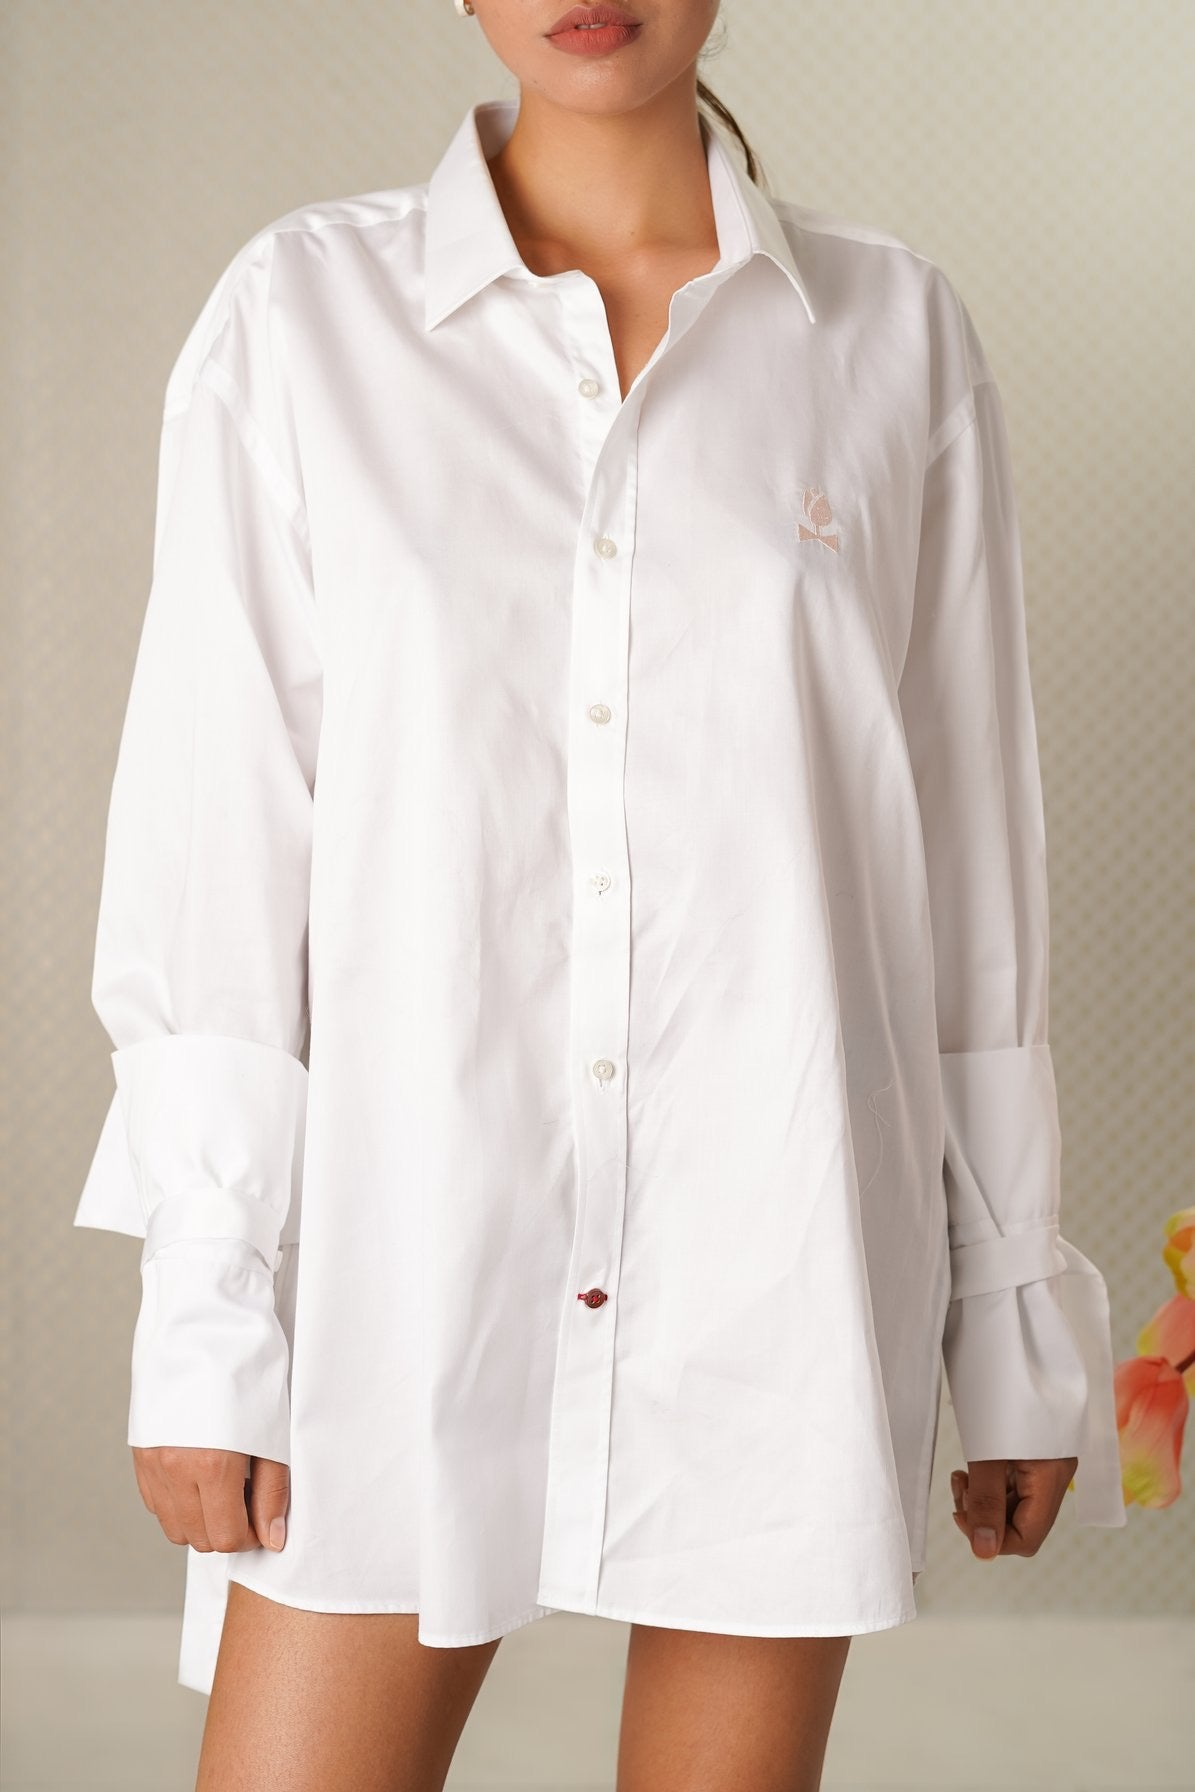 Navy Tulip Dress Shirt-JC Lagares official website | JCL.